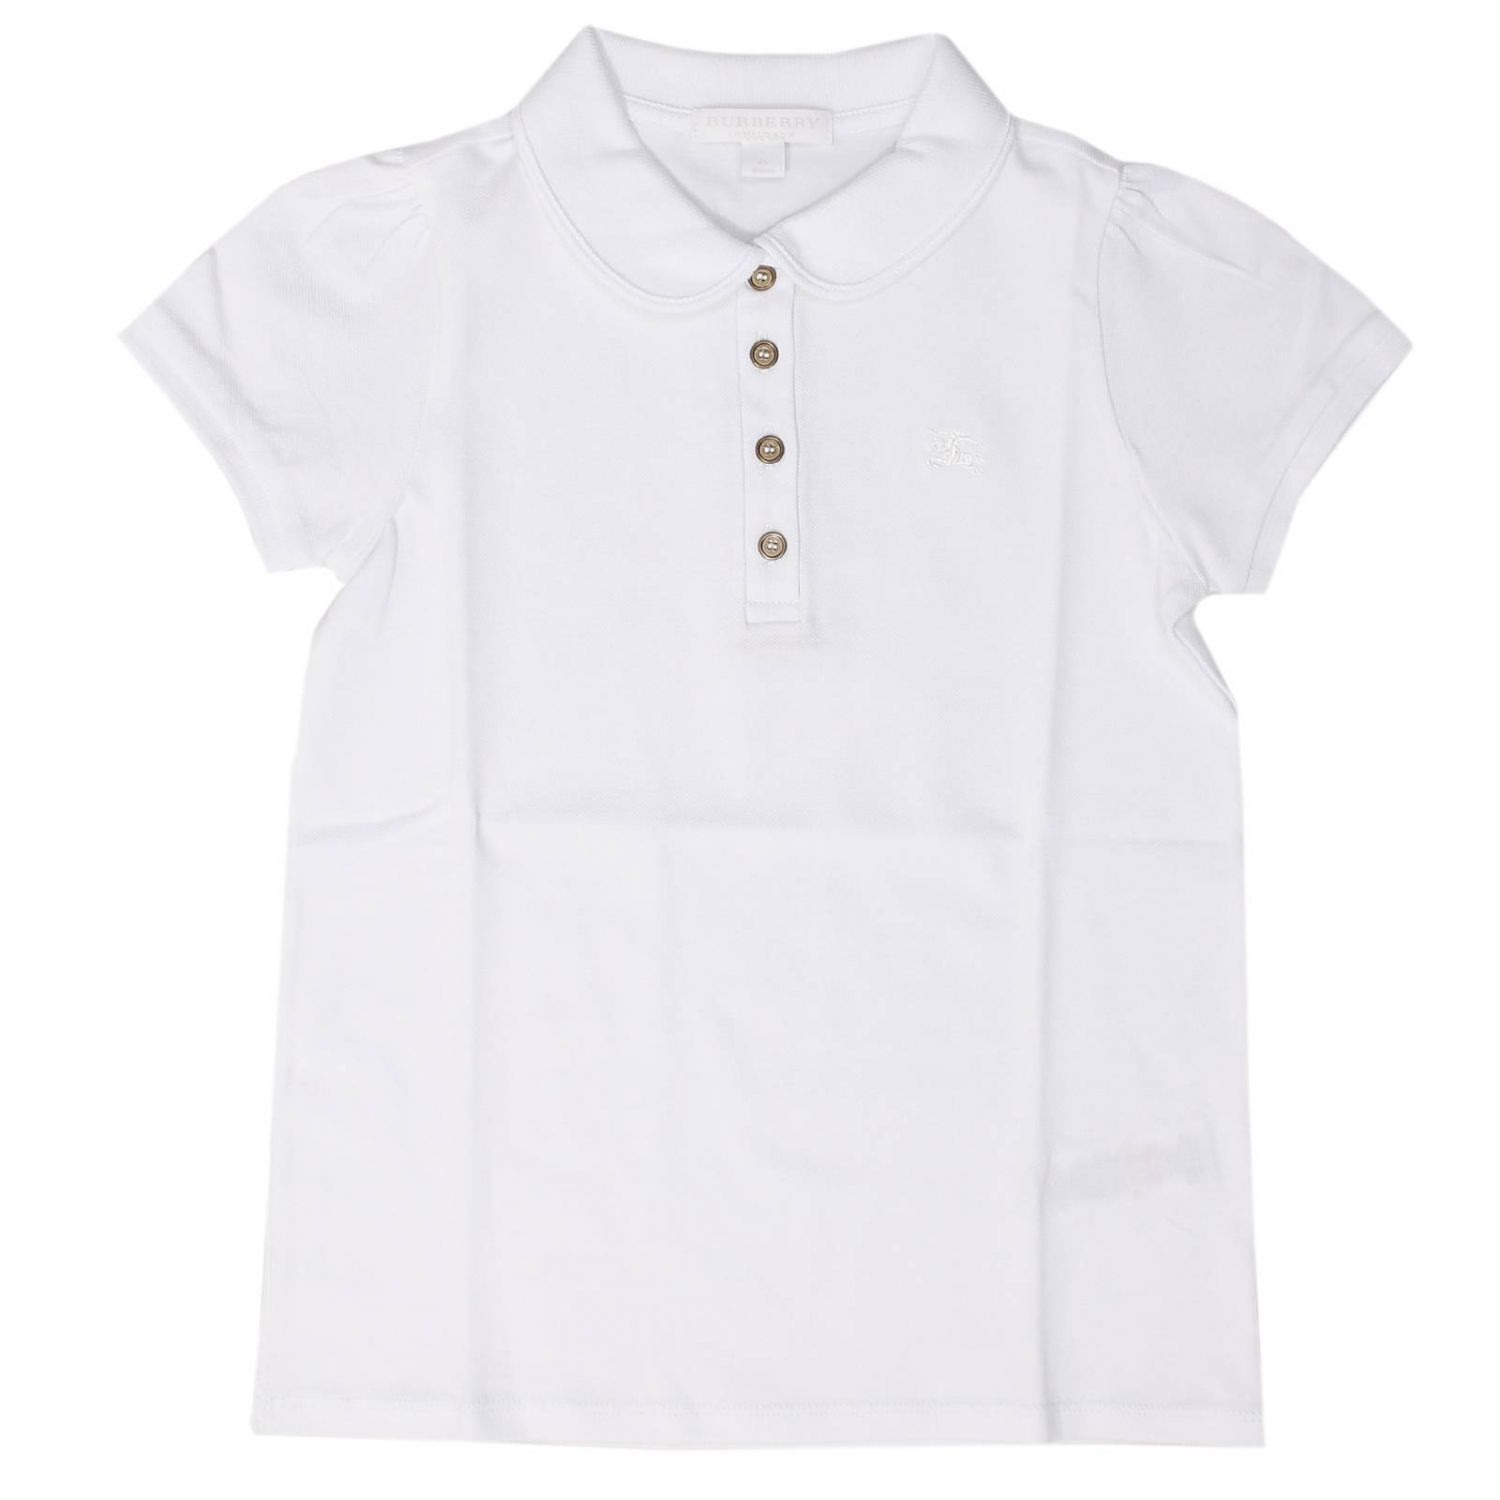 burberry t shirt in white lyst. Black Bedroom Furniture Sets. Home Design Ideas